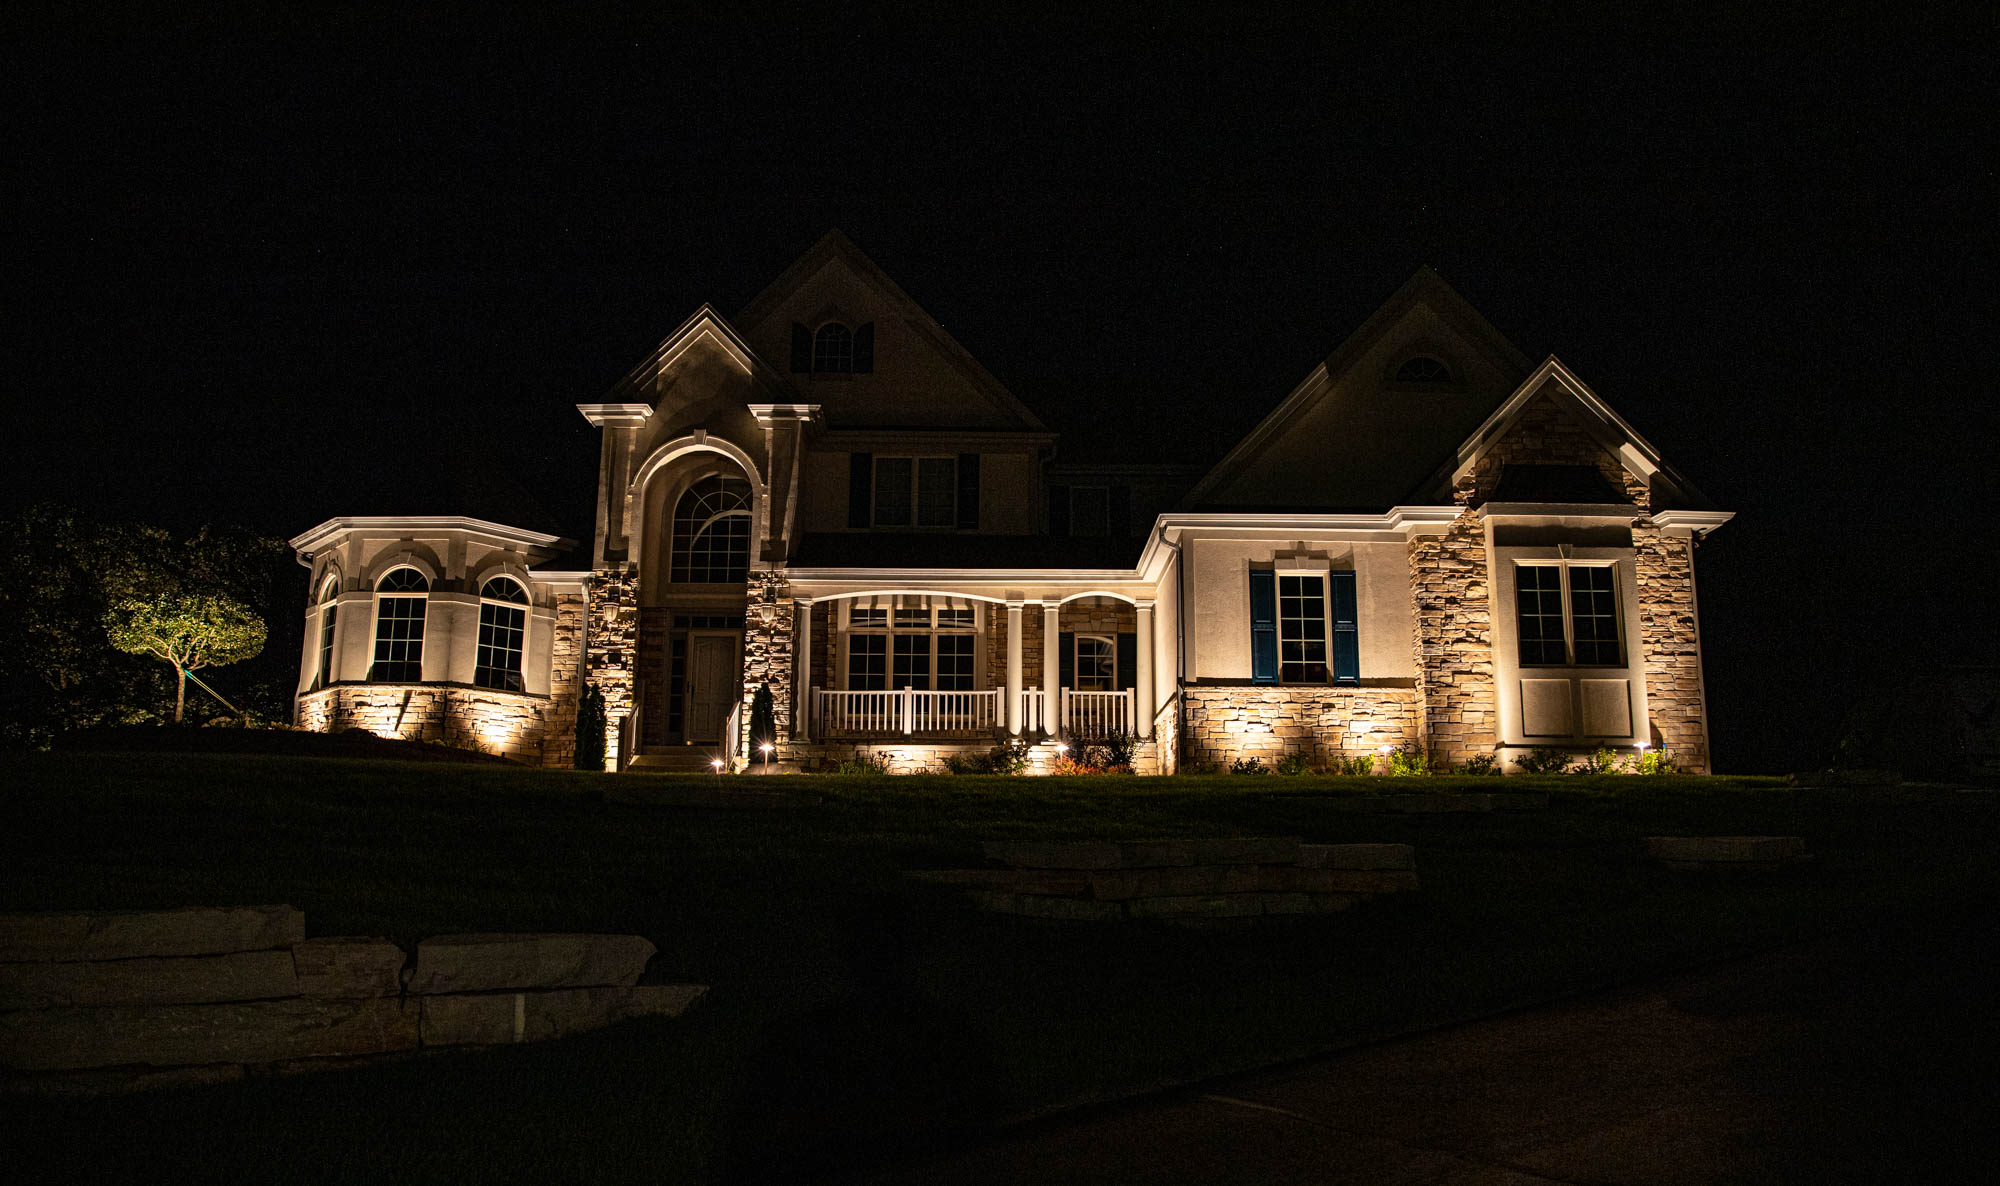 mukwonago landscape outdoor lighting night owl home residential landscape lighting in delafield wisconsin